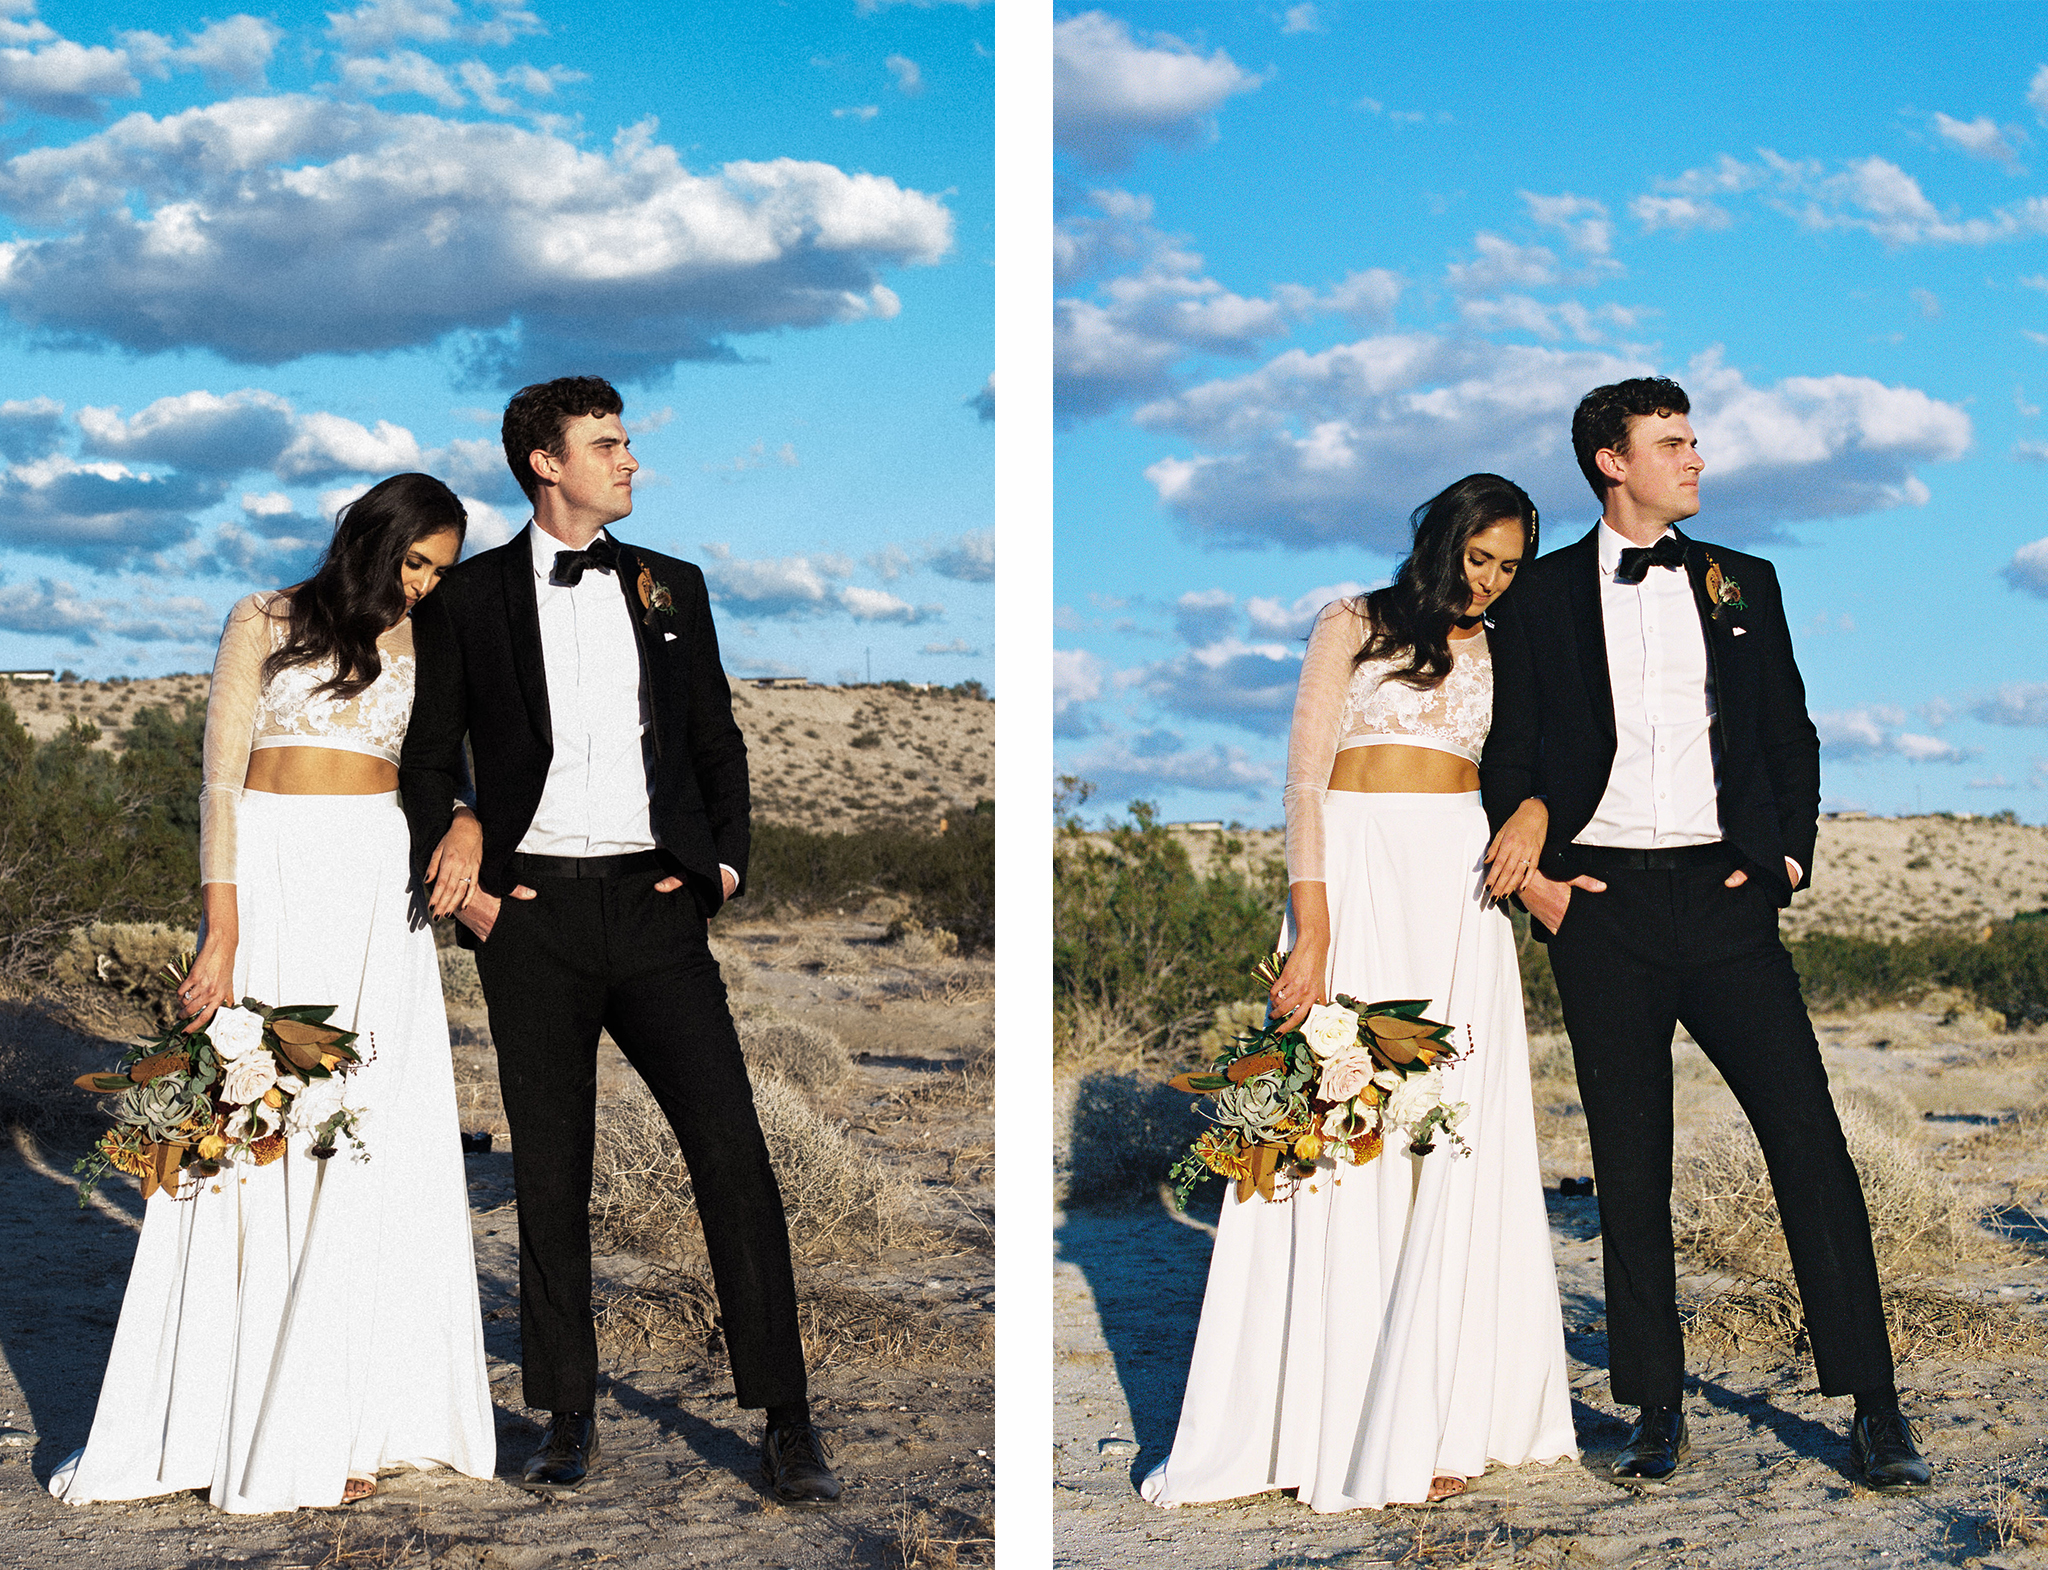 Mastin Labs Portra 400 digital edit on the left vs. Portra 400 shot on 35mm film with my Canon EOS 3 and 50mm 1.2L lens. This right here is the beauty of film. The image on the left took a couple minutes to edit, the image on the right is straight from the lab. Notice the highlights in her dress and on his shirt, saved on film, disappearing on digital. Also notice the better depth in colors on her bouquet and perfect skin tones.